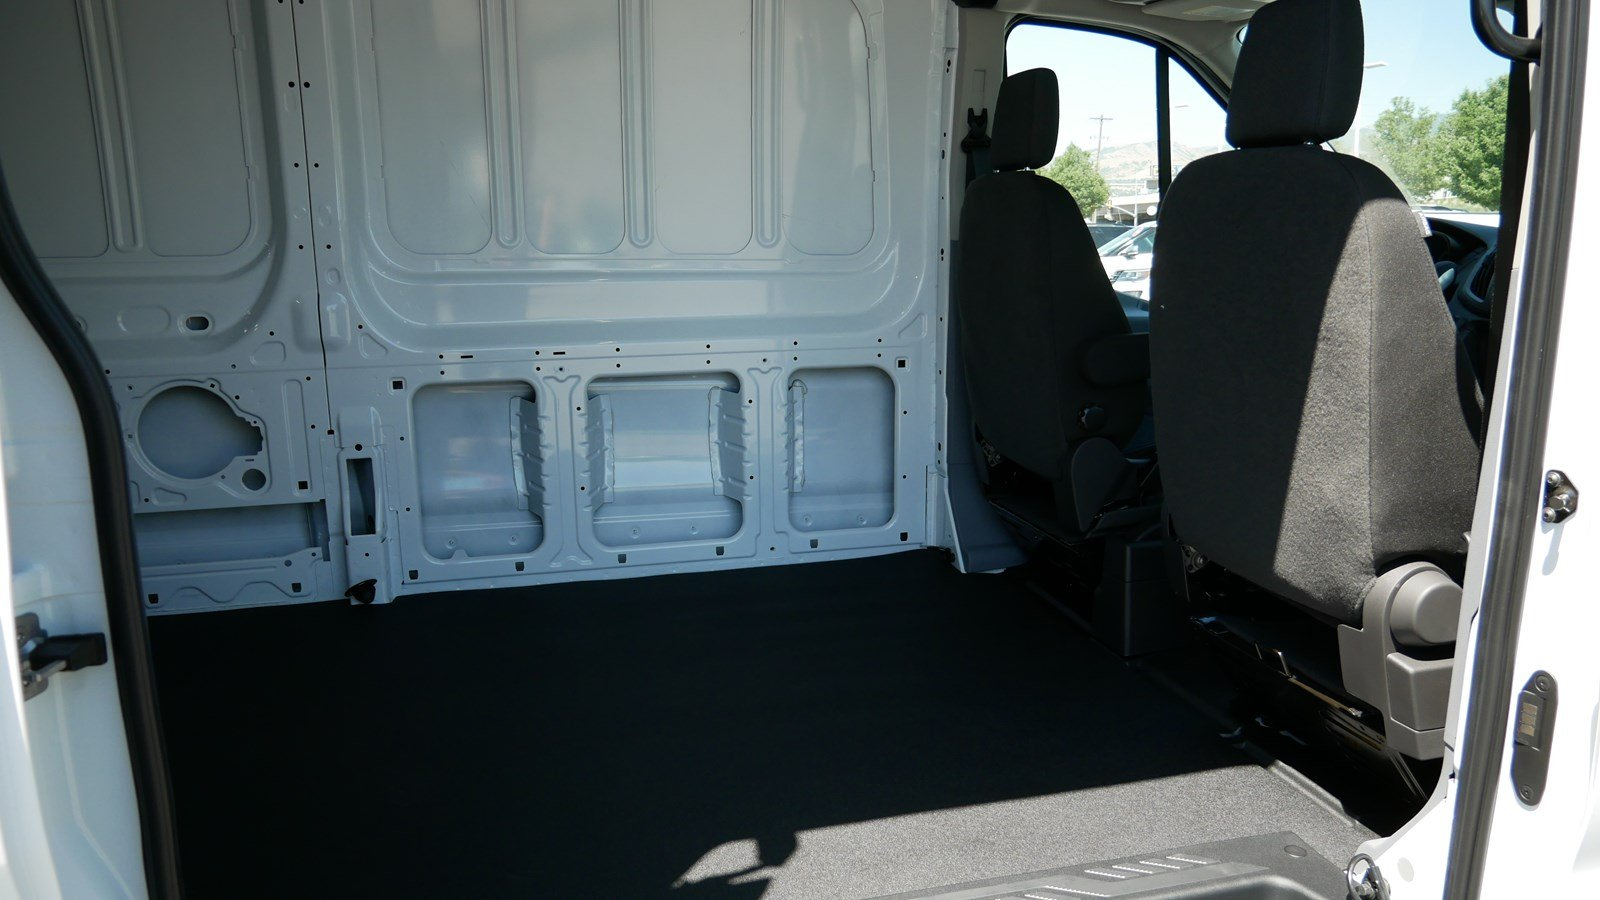 2019 Transit 250 Med Roof 4x2, Empty Cargo Van #69302 - photo 25